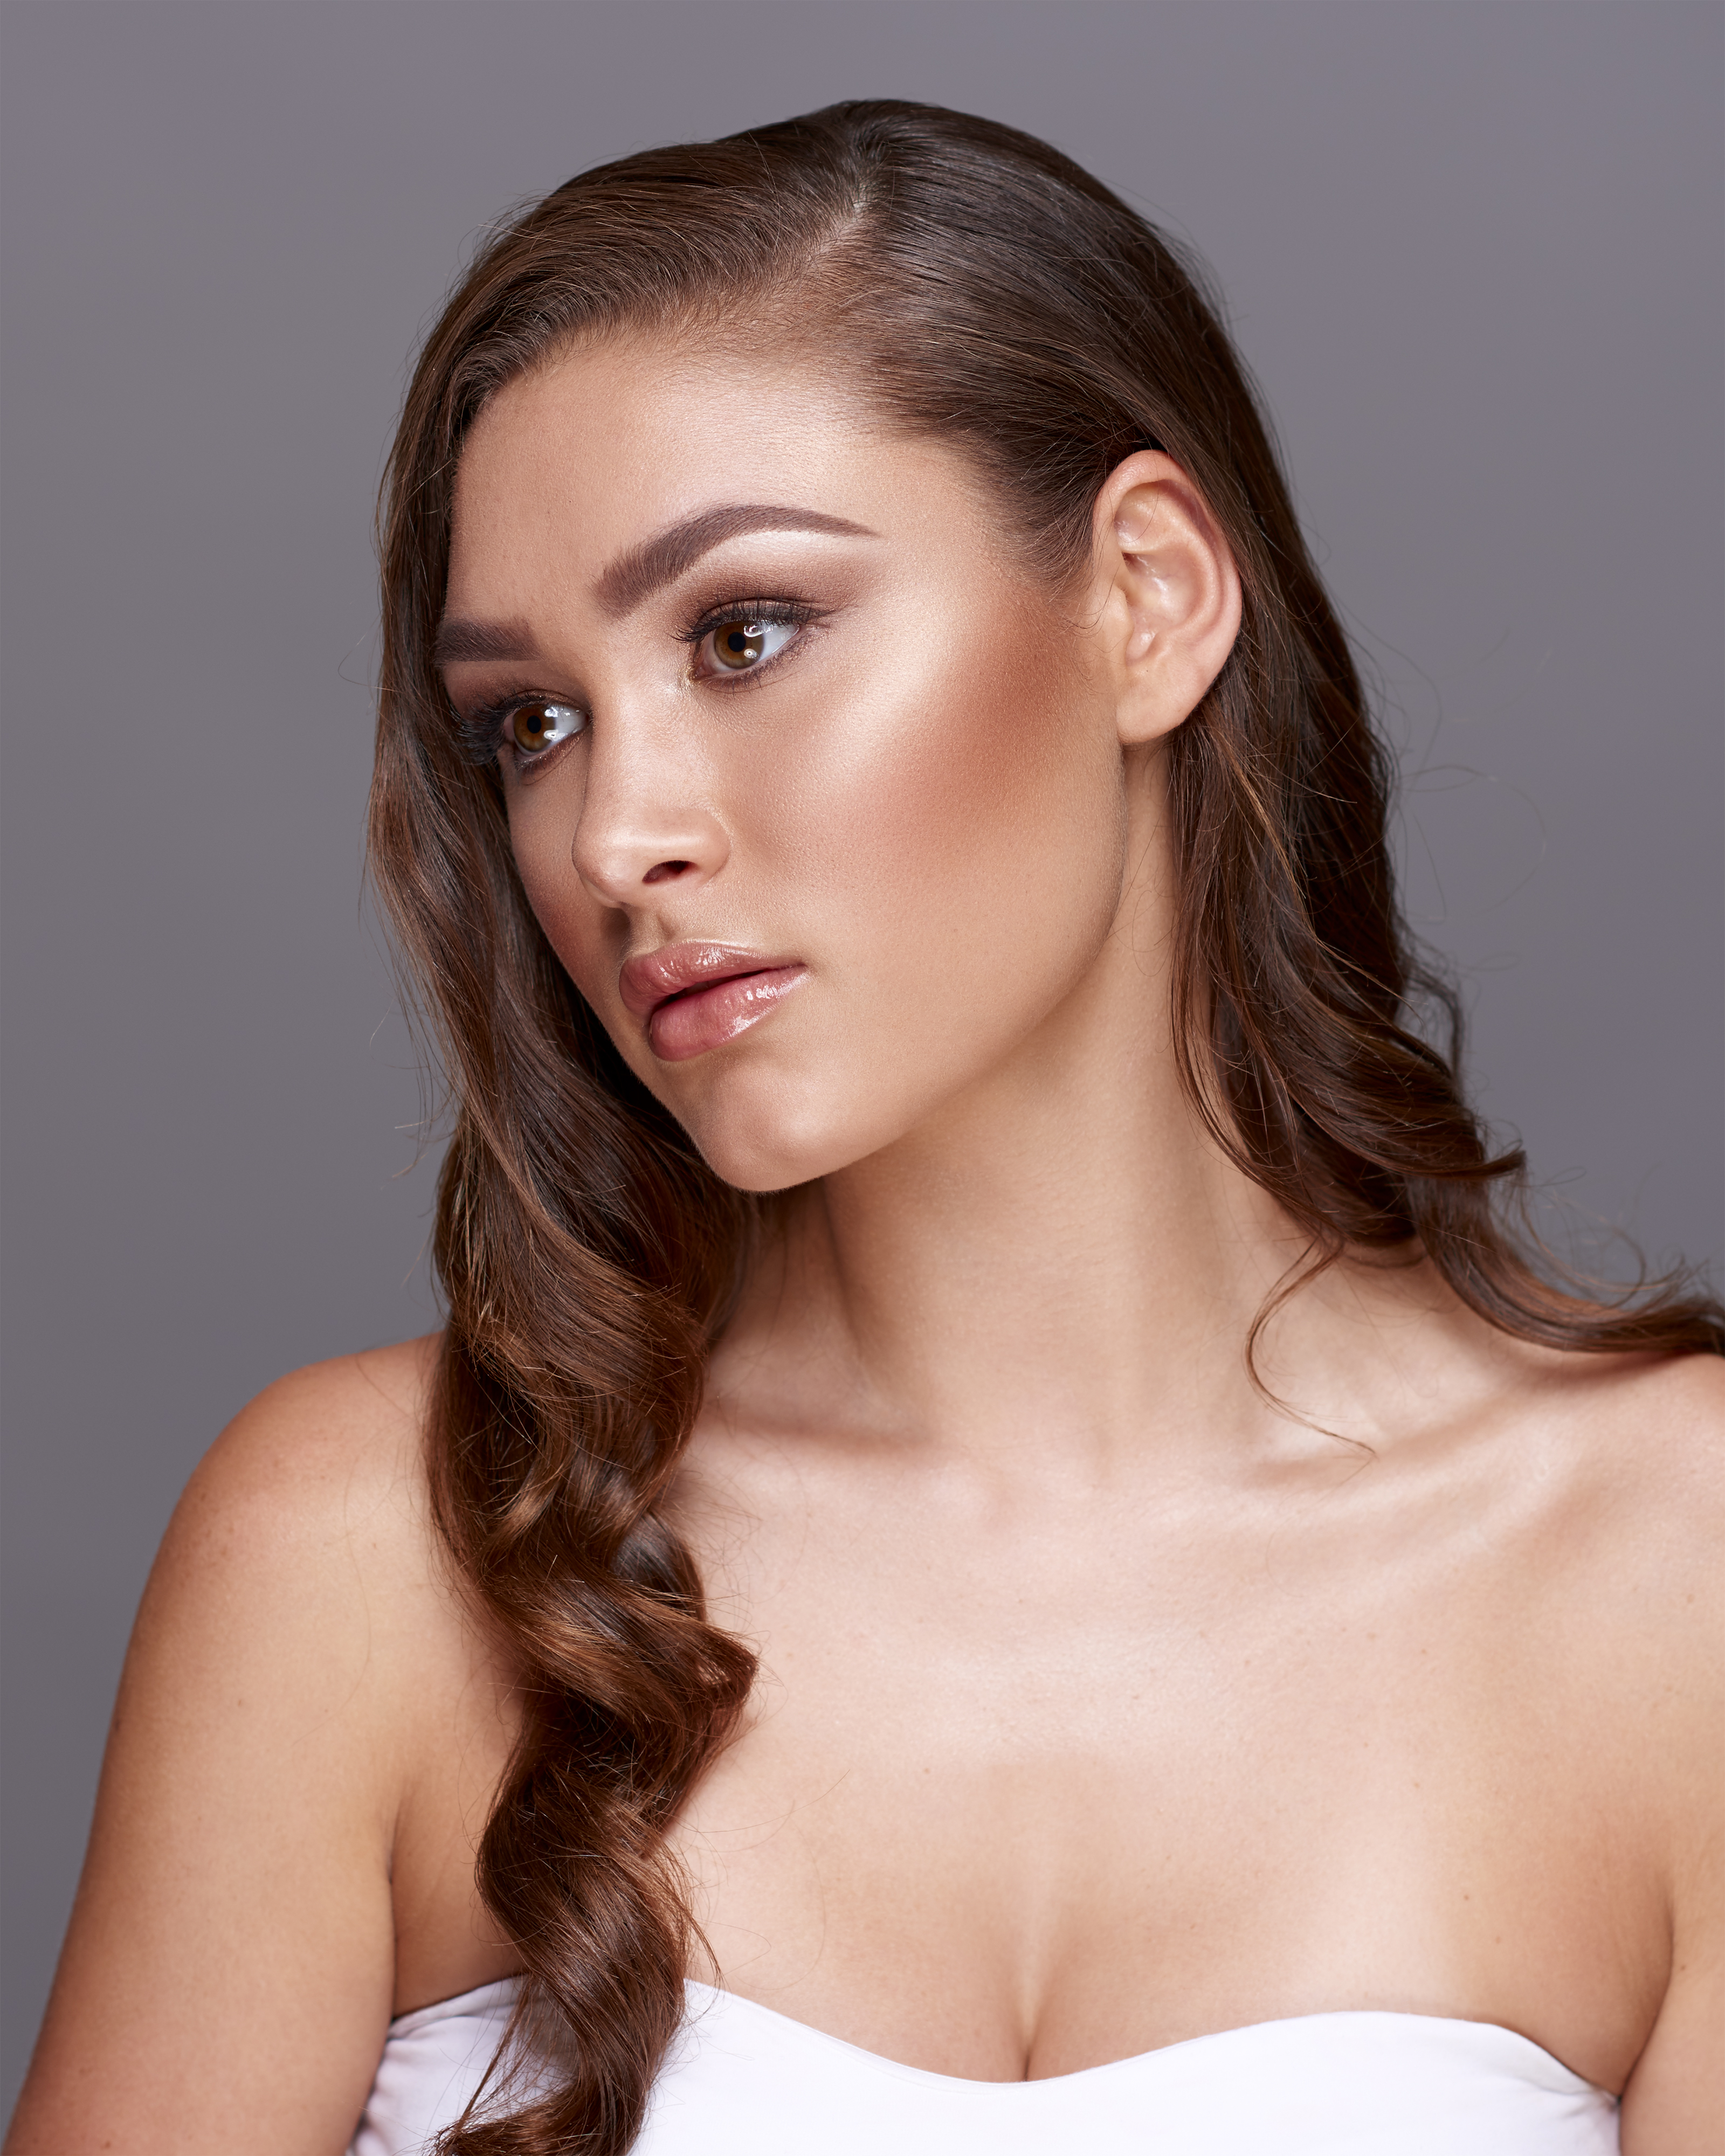 Photographic Hair and Makeup